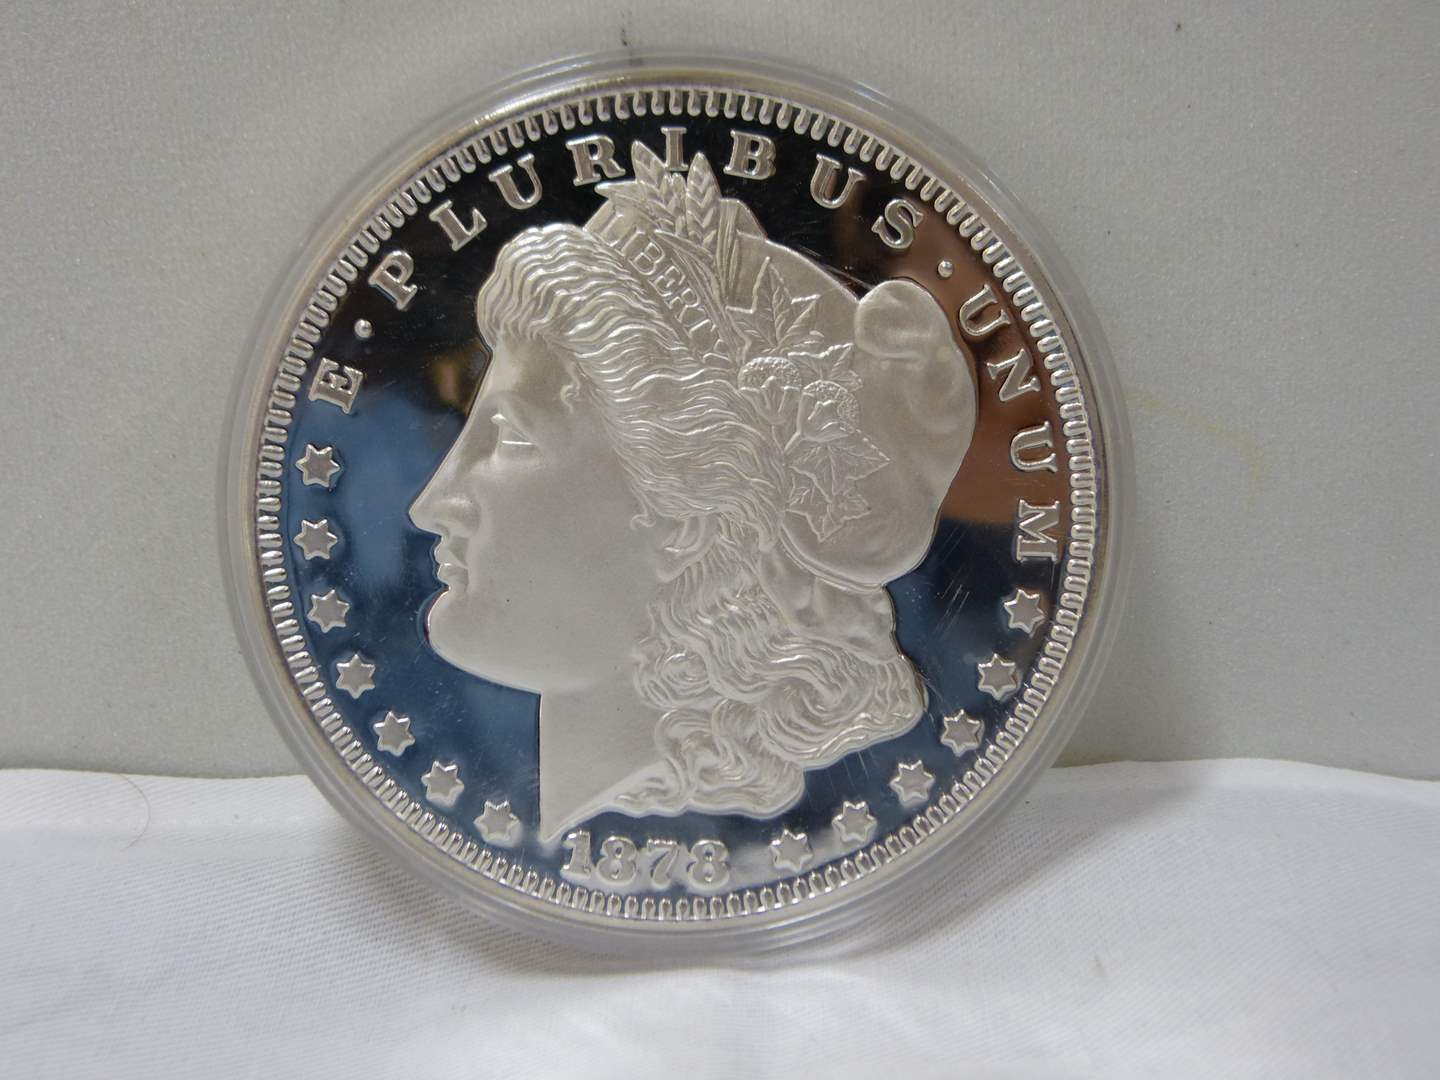 Lot # 201  WOW Limited Edition #00300 1/2 POUND PURE SILVER Morgan (YES HALF POUND)